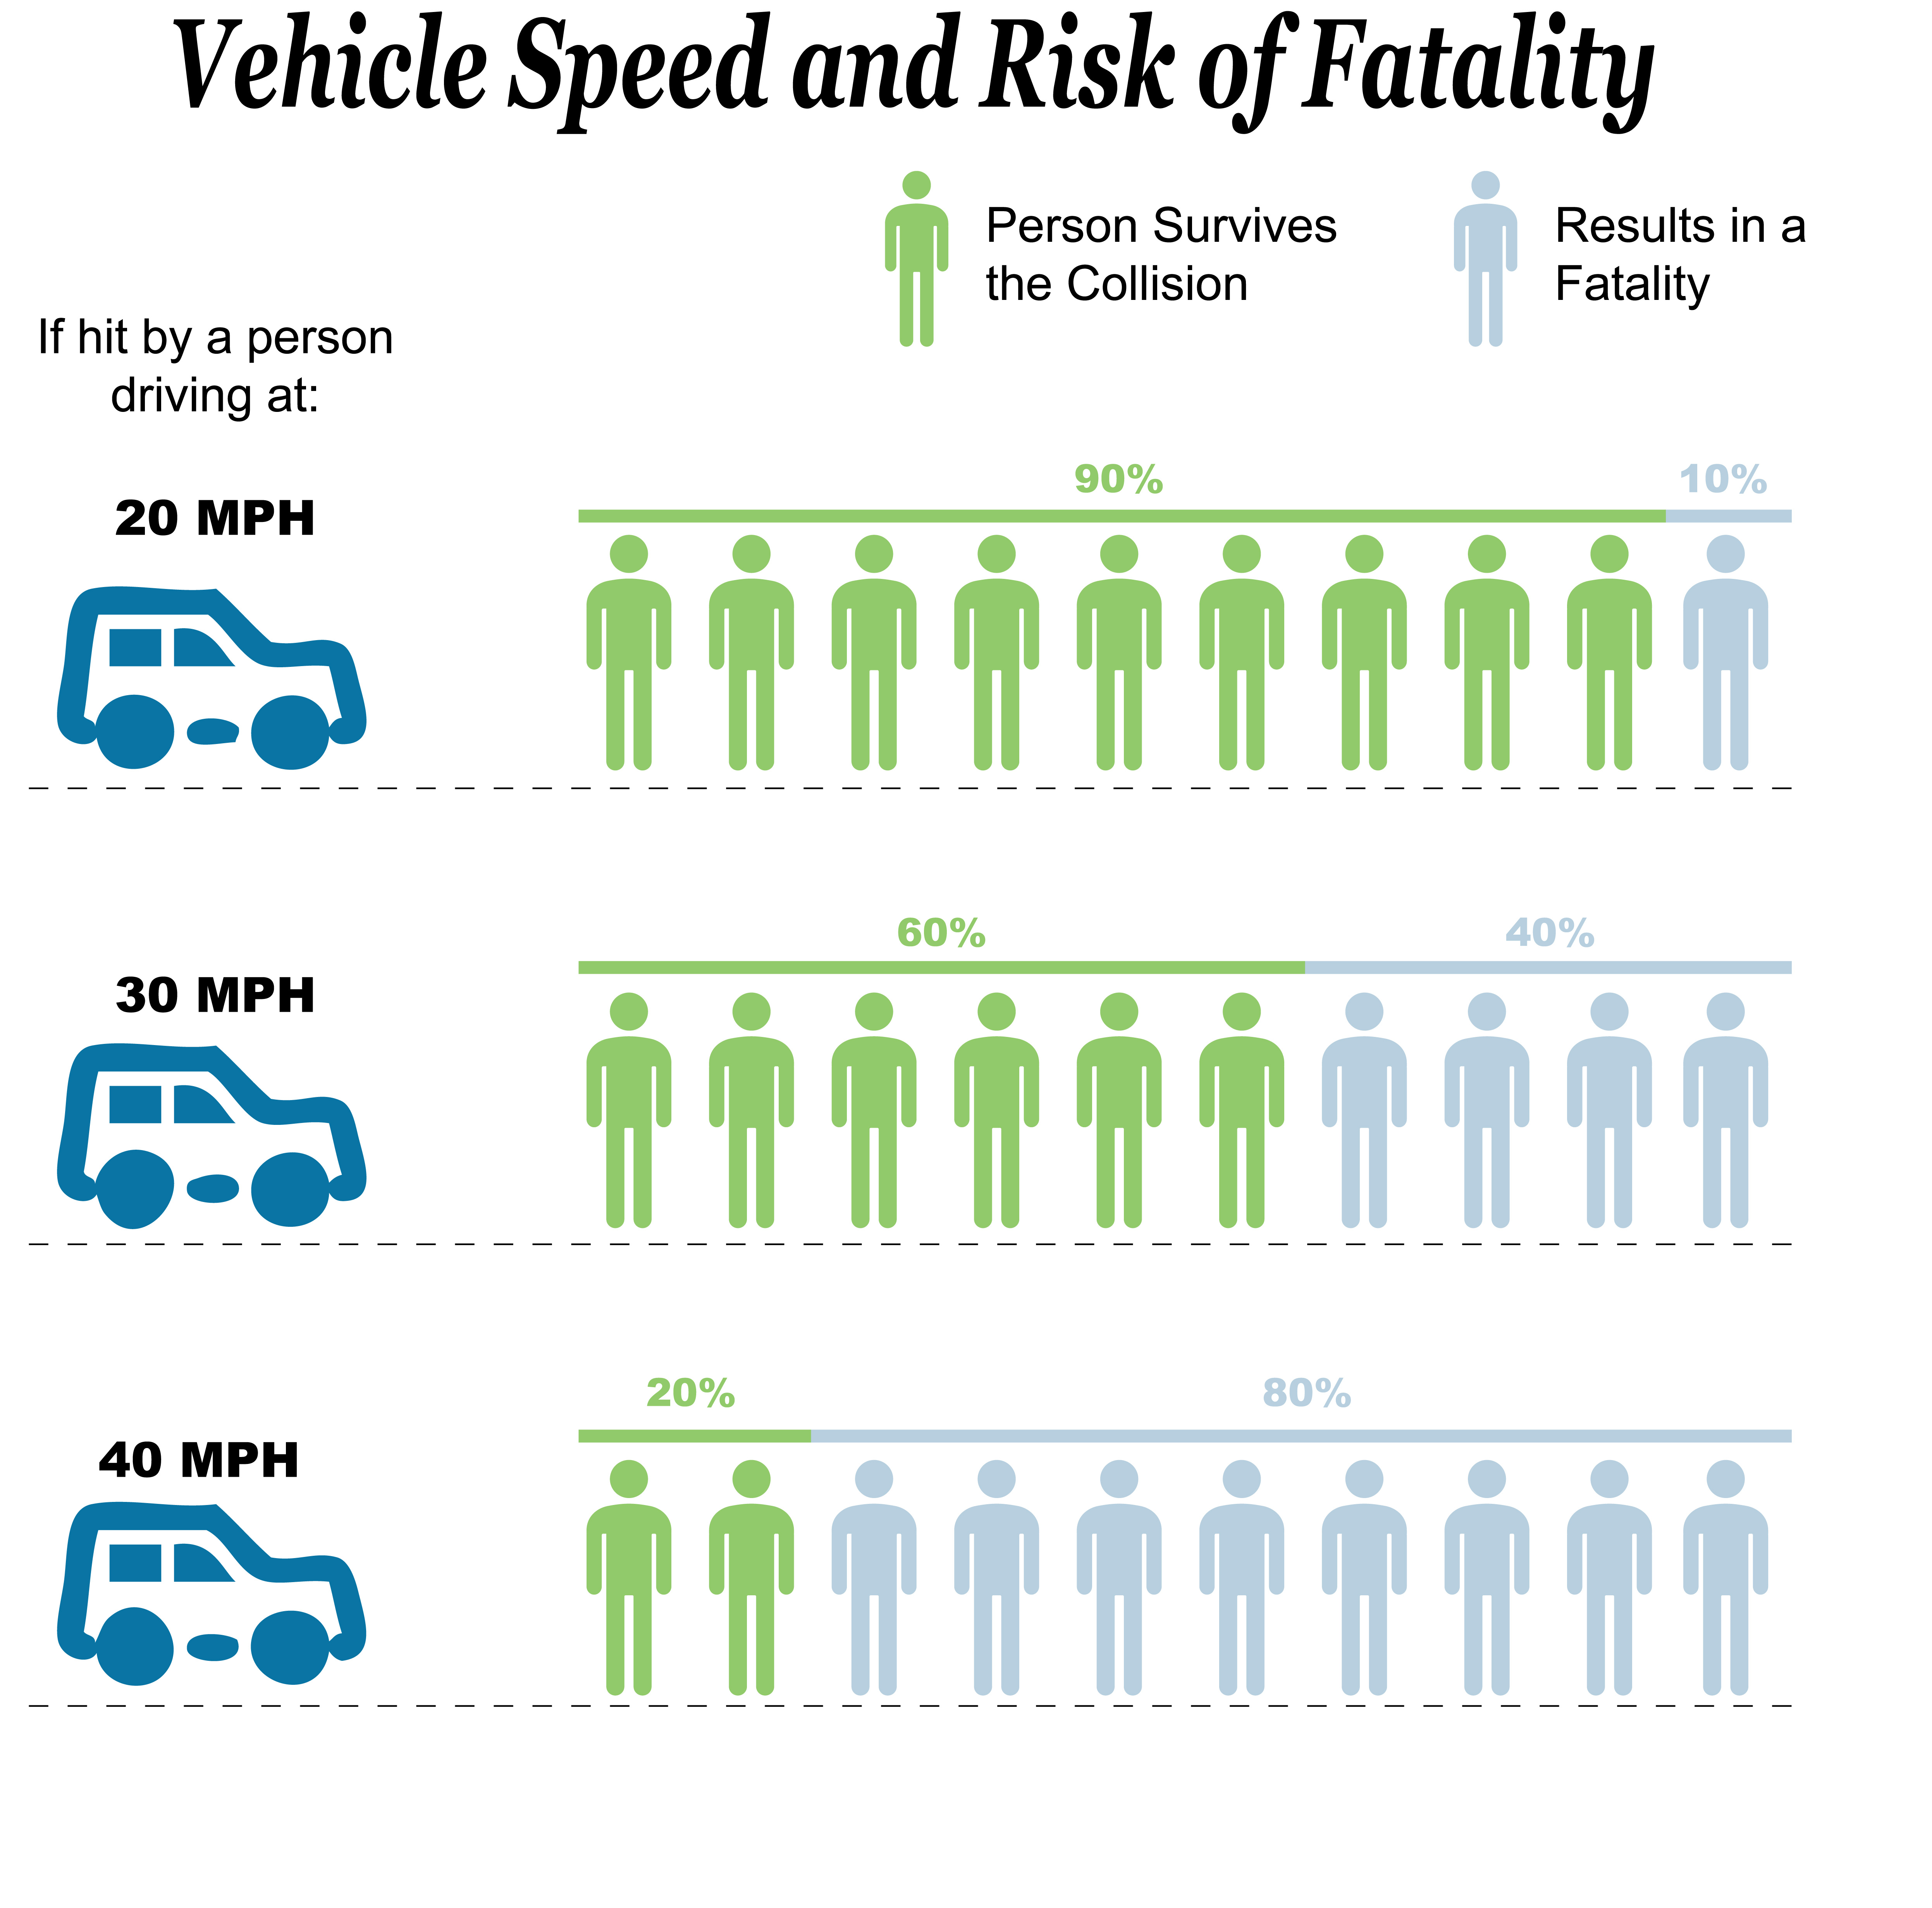 Graphic_3_Vehicle_Speed_and_Risk_of_Fatality.jpg